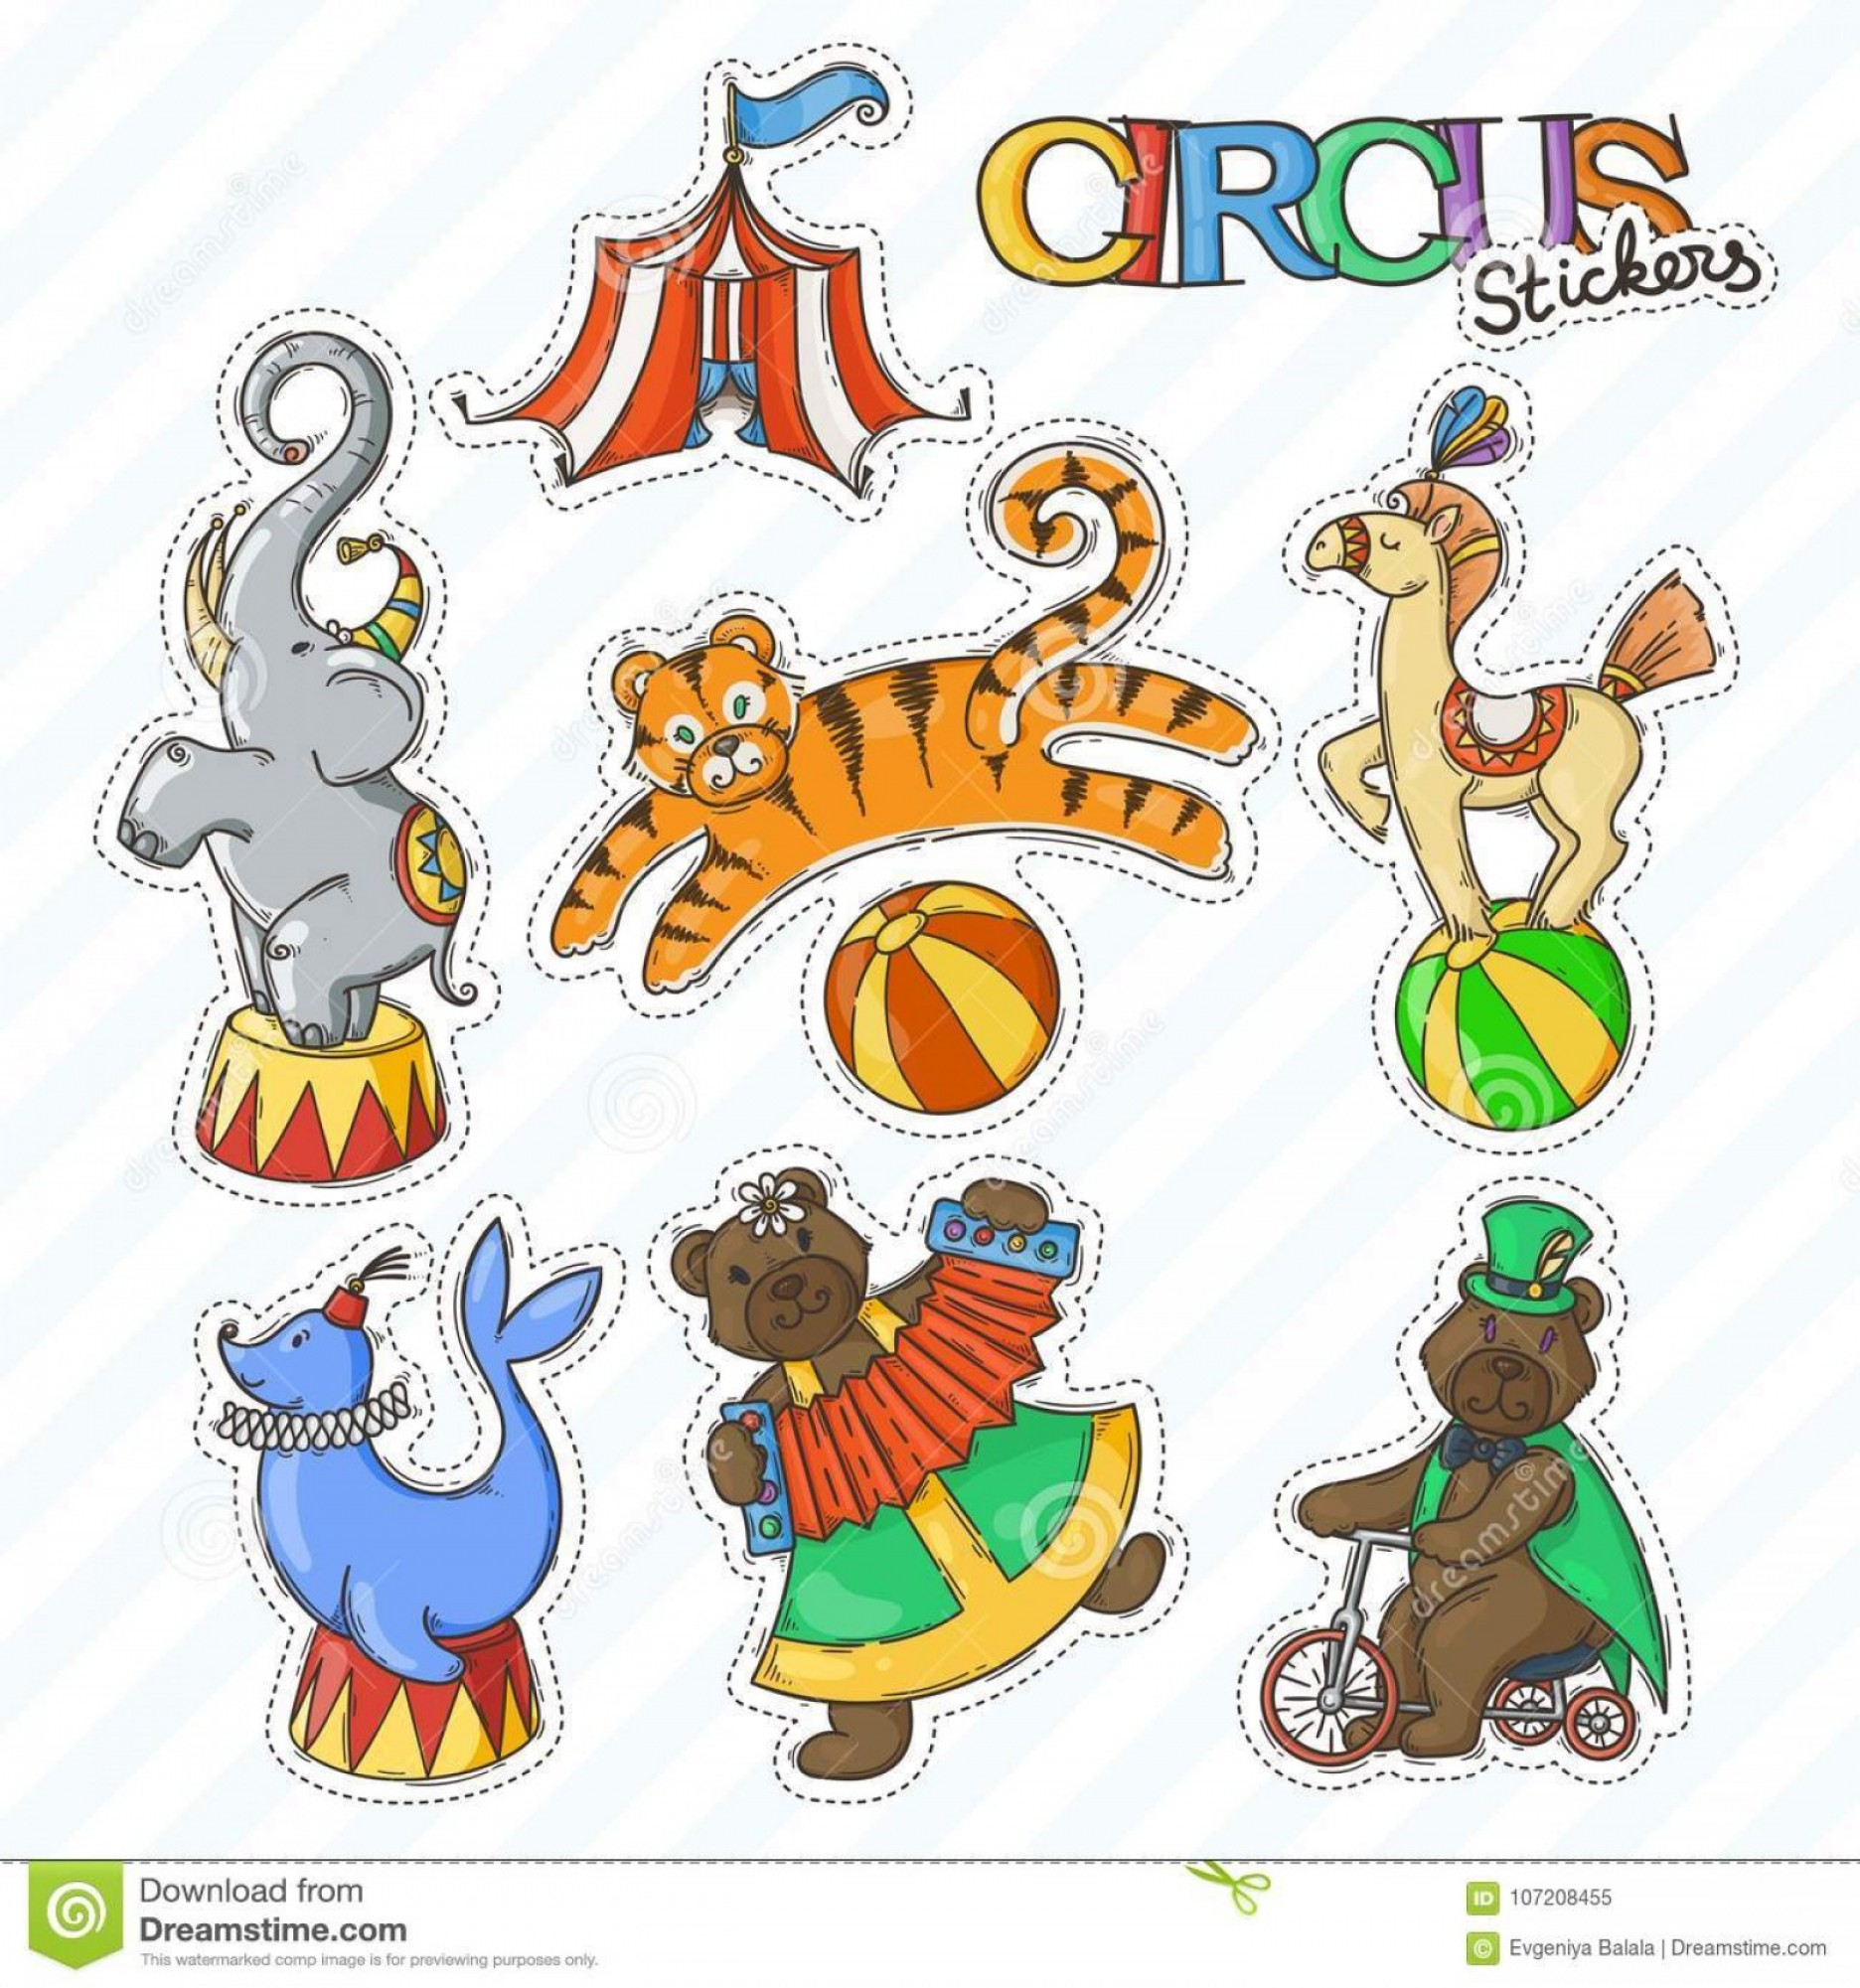 Circus Animals Vector Graphic: Circus Cartoon Icons Collection Chapiteau Tent Trained Wild Animals Vector Doodle Stickers Set Image